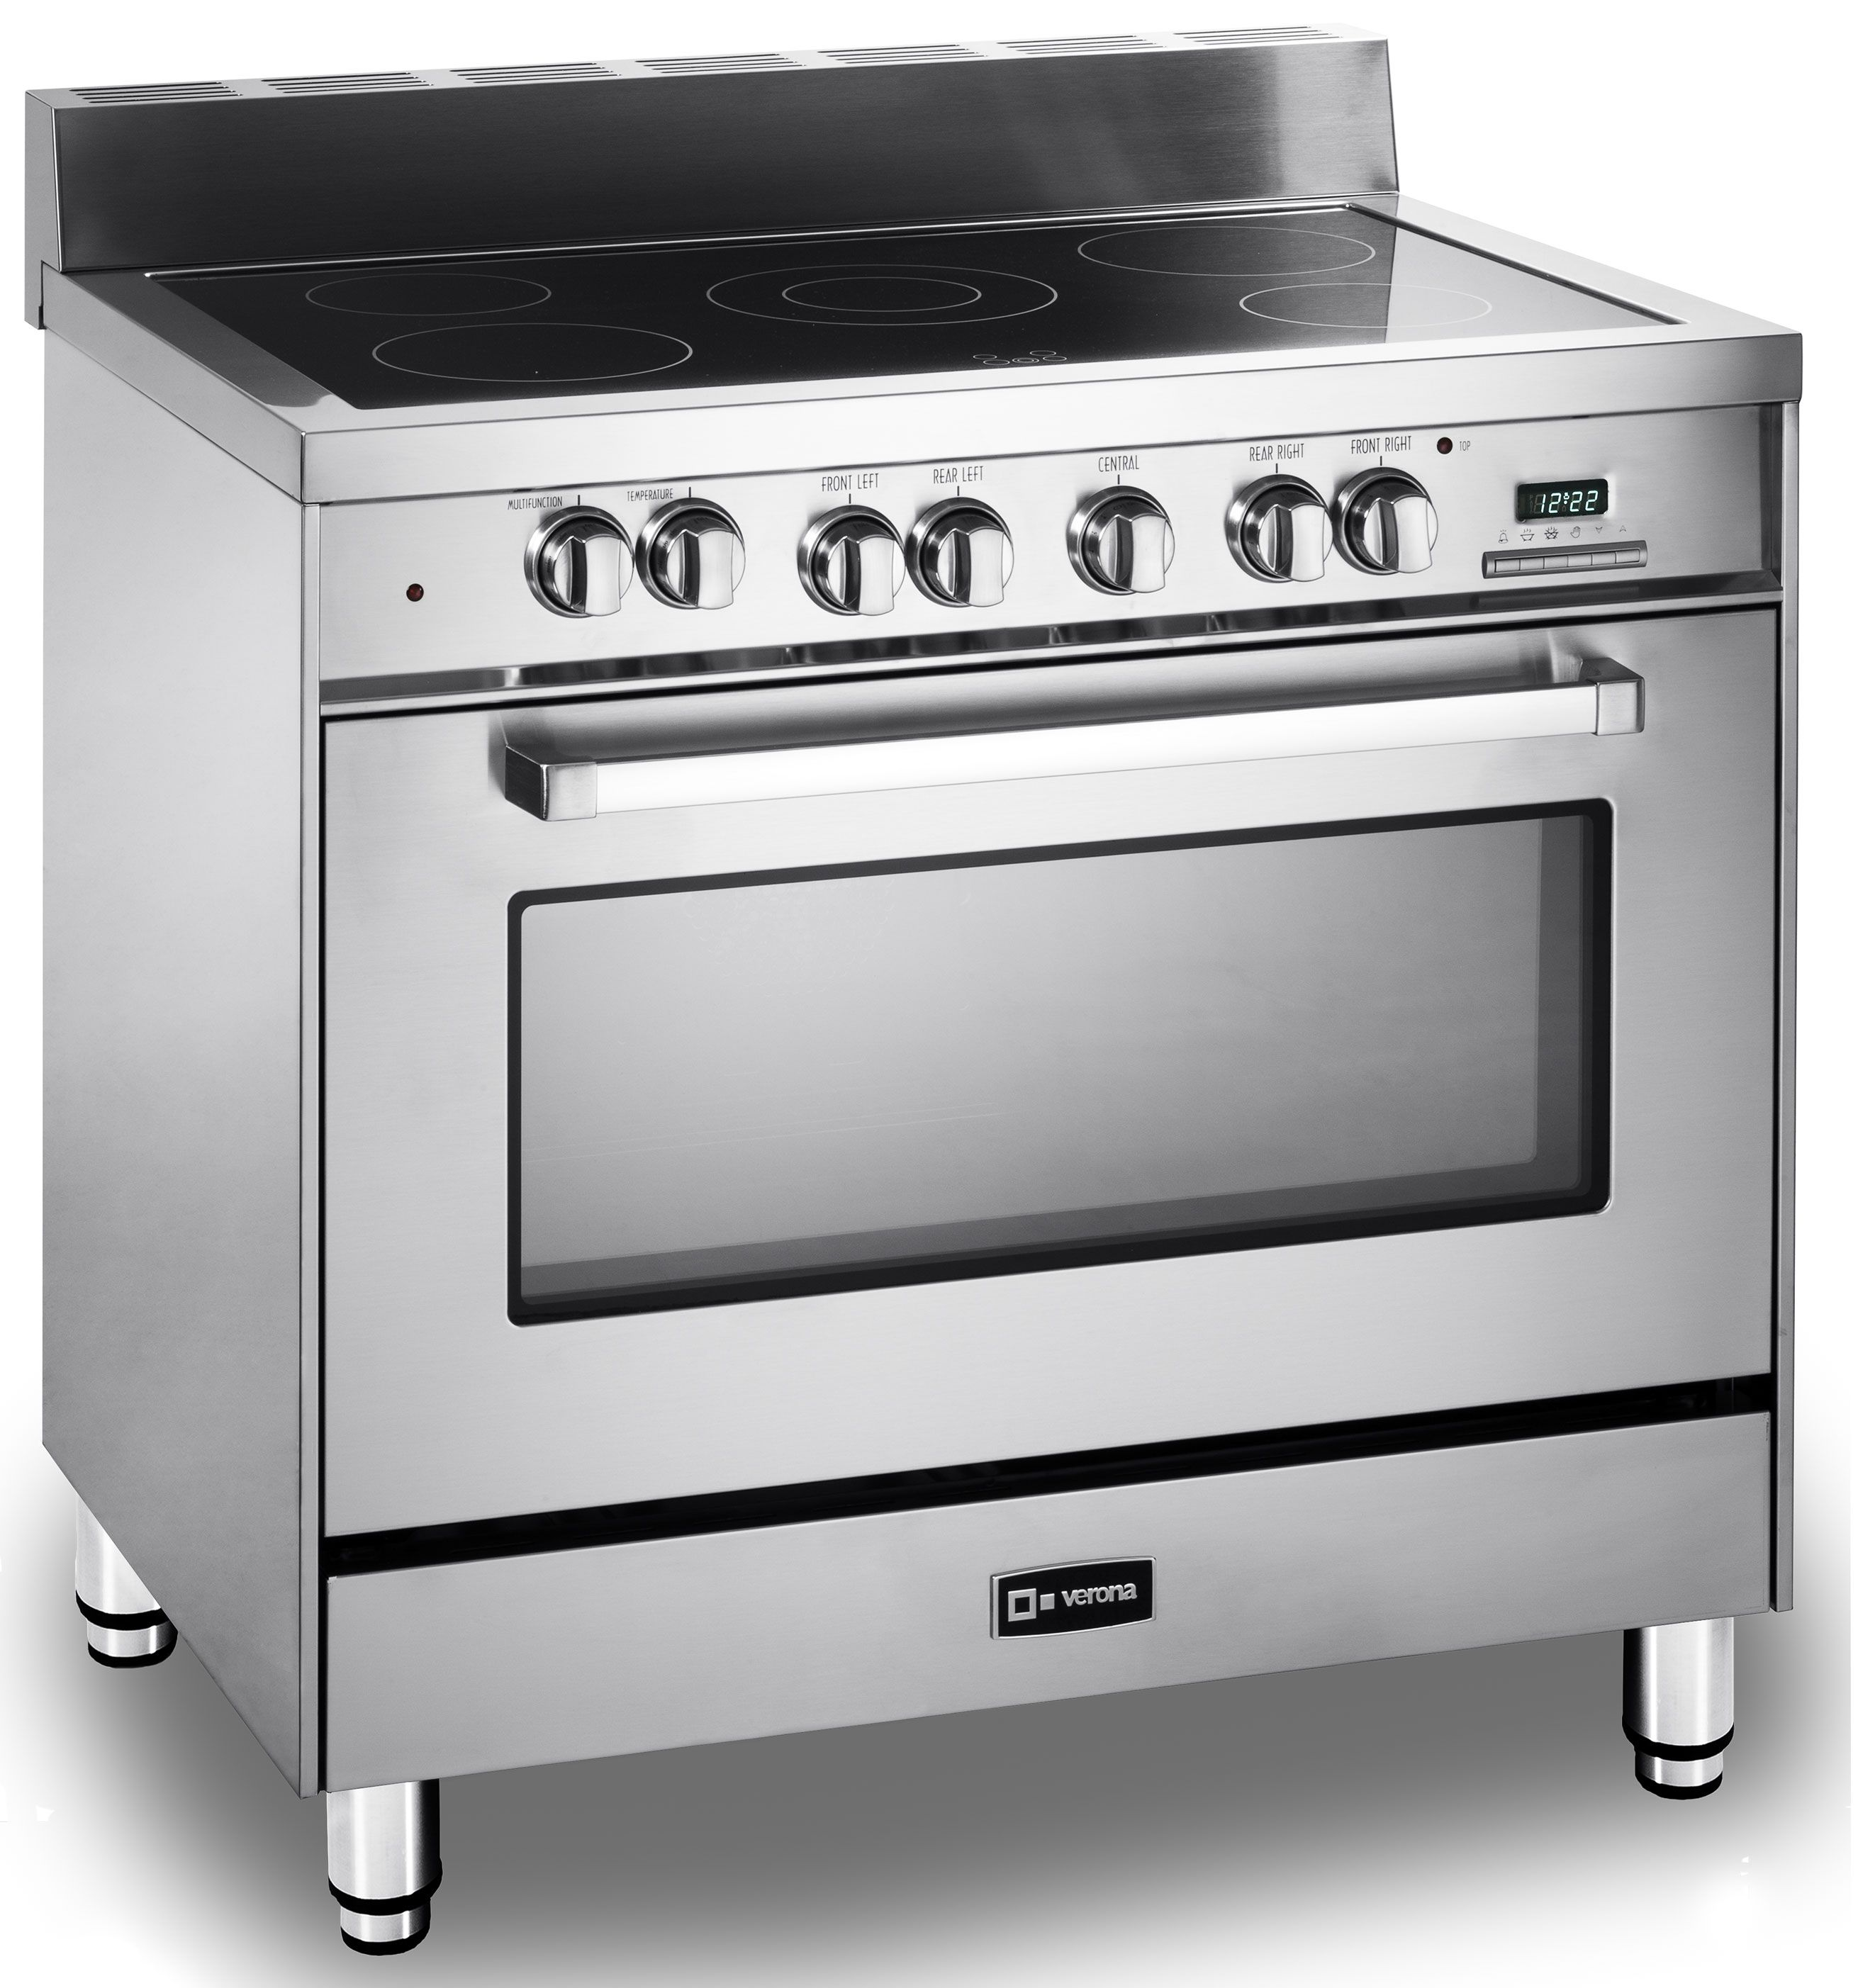 36 Electric Range >> Aeg 36 Inch Electric Range New 36 Stainless Steel Hood